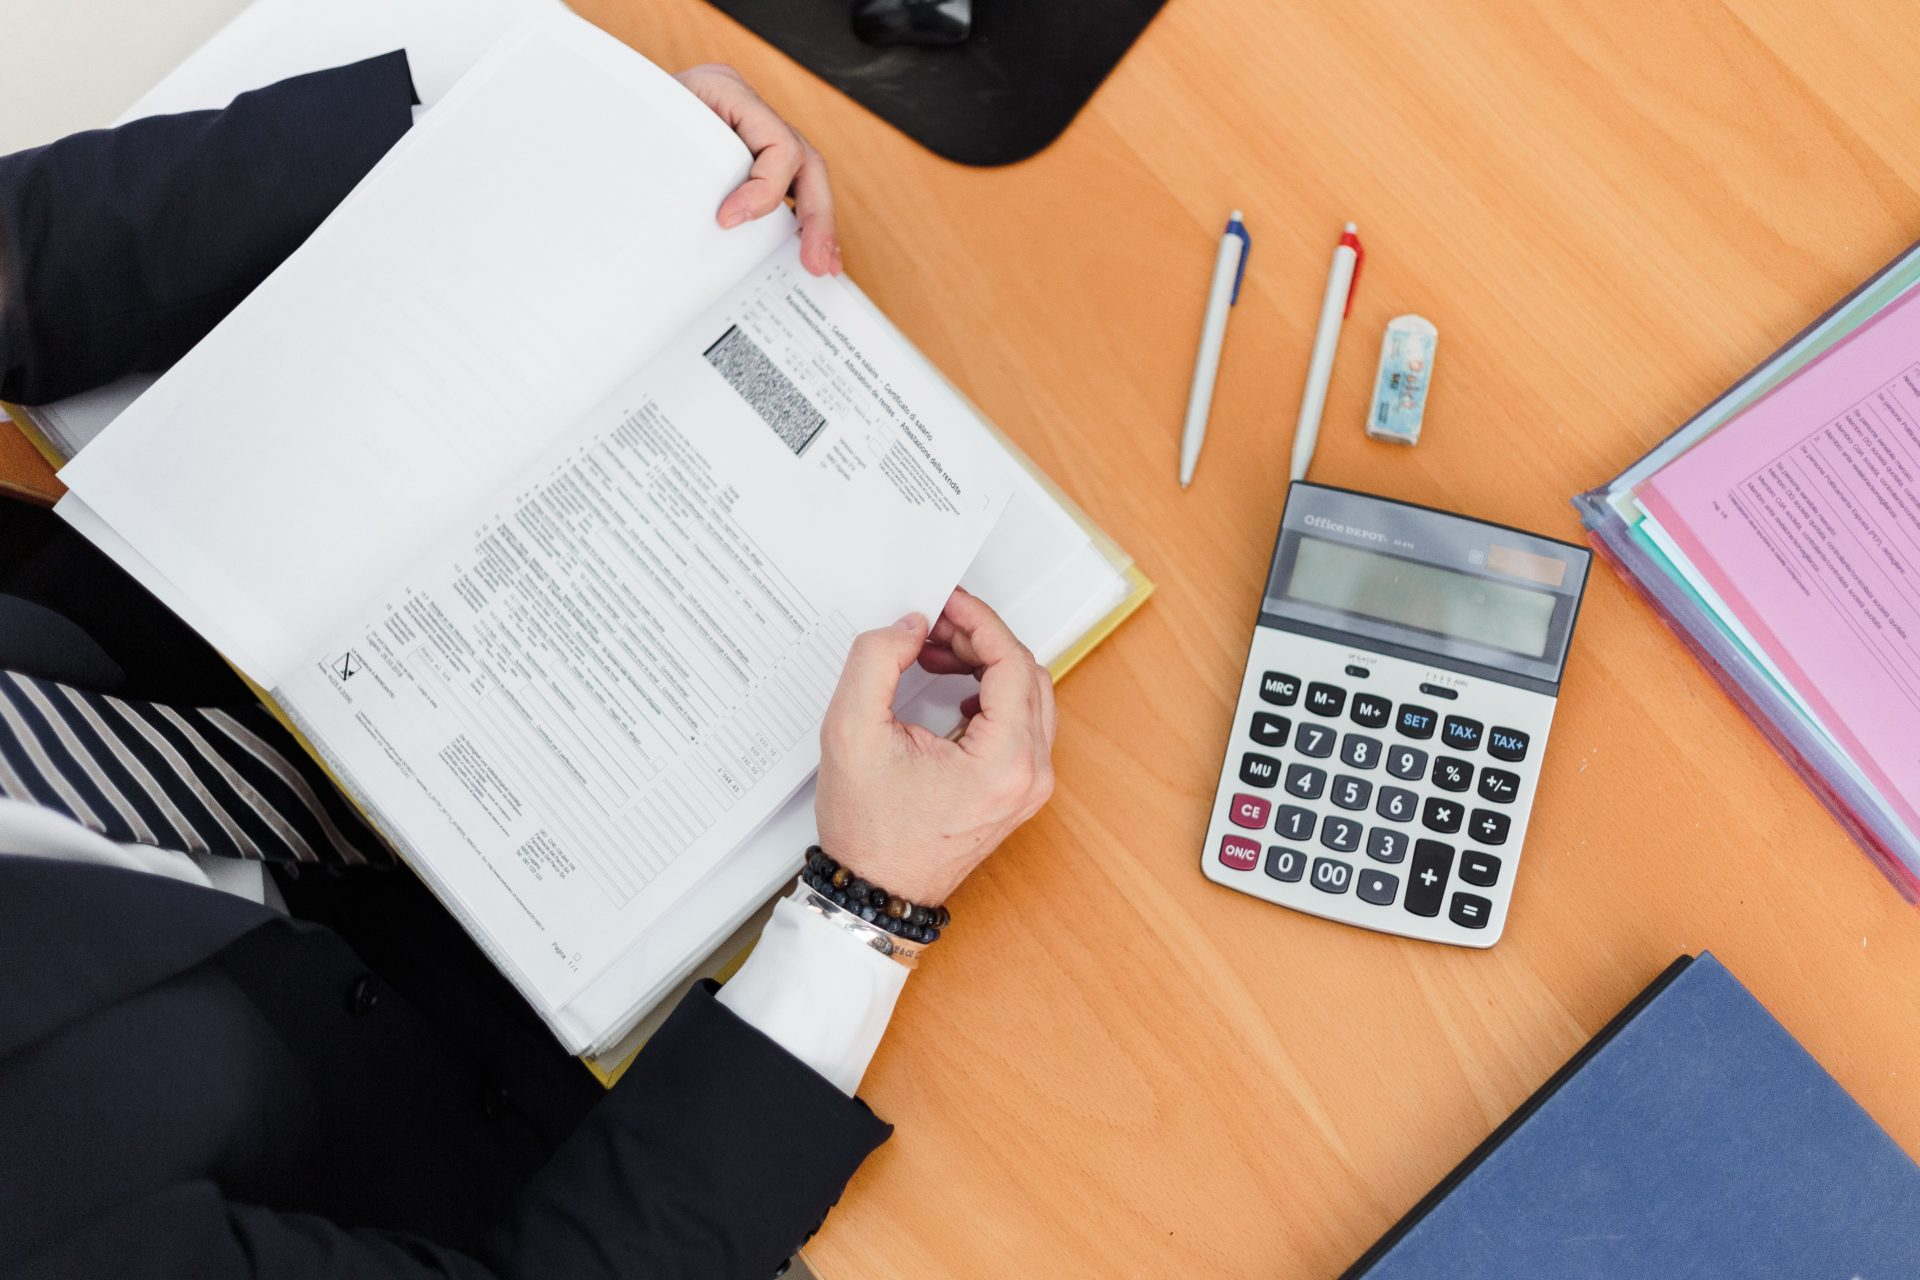 Knowing how to calculate depreciation is an essential tool for a successful business.